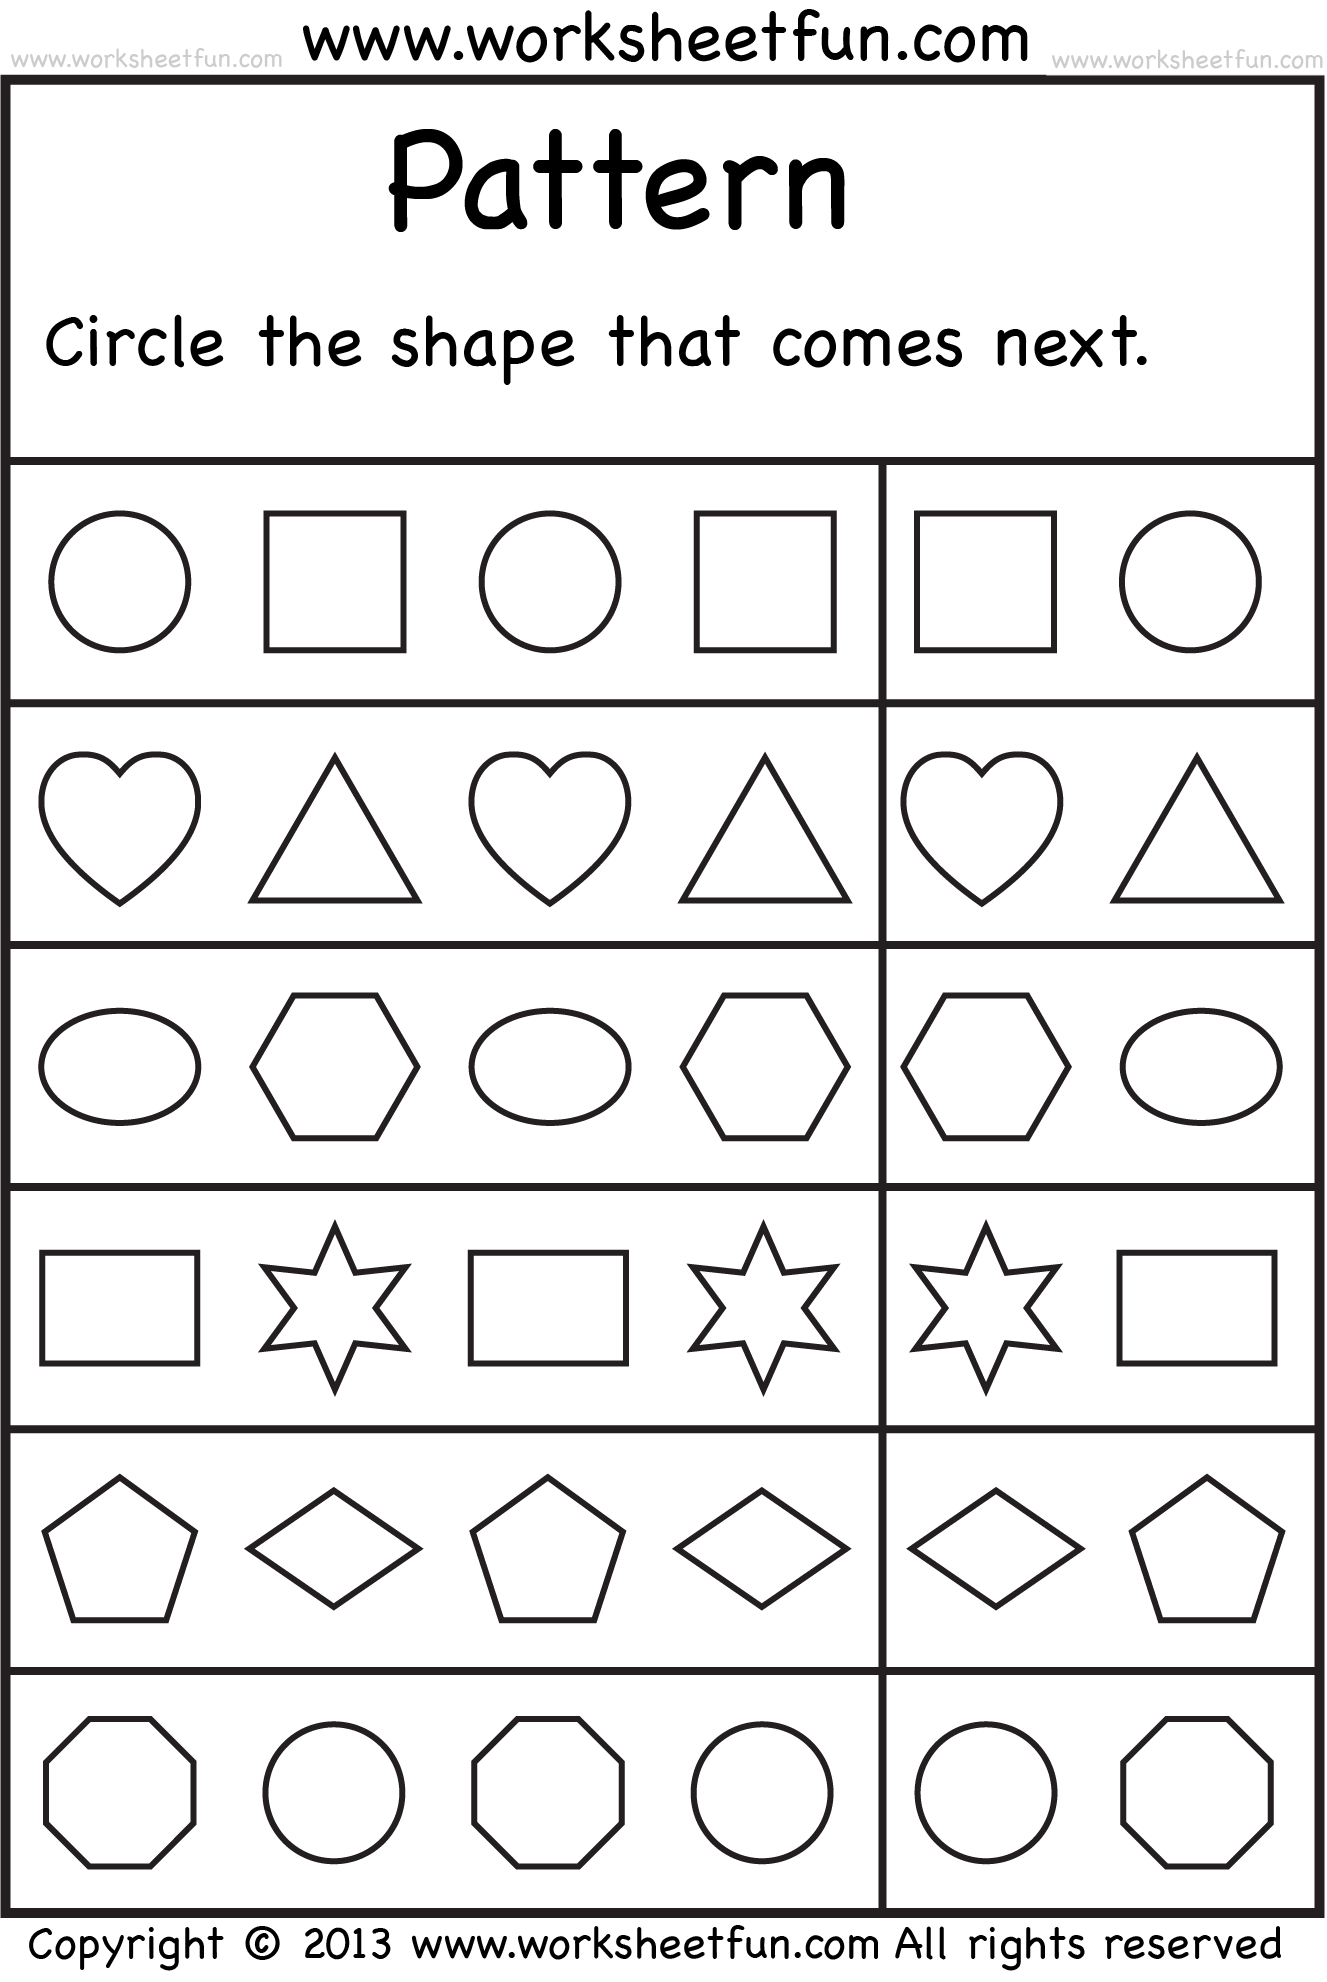 Proatmealus  Sweet  Images About School Worksheets On Pinterest  Number Words  With Excellent  Images About School Worksheets On Pinterest  Number Words Alphabet Worksheets And Free Printable Kindergarten Worksheets With Appealing Th Grade Text Structure Worksheets Also Vba Excel Copy Worksheet To Another Workbook In Addition Free Worksheets Nd Grade And Note Value Worksheets As Well As Numbers  Worksheet Additionally Printable Worksheets For Th Grade From Pinterestcom With Proatmealus  Excellent  Images About School Worksheets On Pinterest  Number Words  With Appealing  Images About School Worksheets On Pinterest  Number Words Alphabet Worksheets And Free Printable Kindergarten Worksheets And Sweet Th Grade Text Structure Worksheets Also Vba Excel Copy Worksheet To Another Workbook In Addition Free Worksheets Nd Grade From Pinterestcom